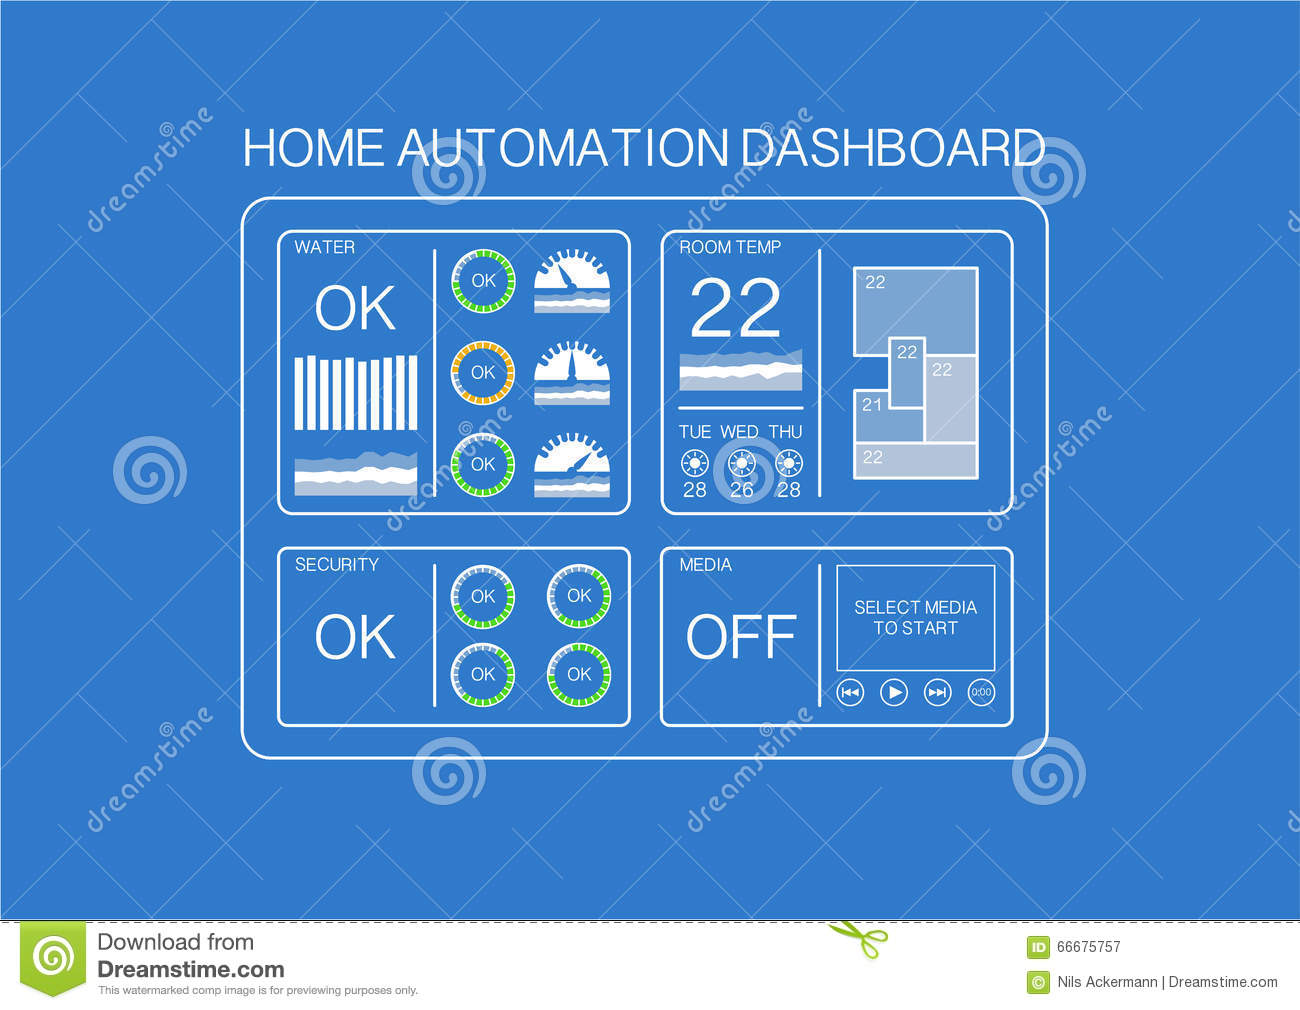 Home Automation Dashboard Example With Flat Design To Control Water, Room  Temperature, Security And Media